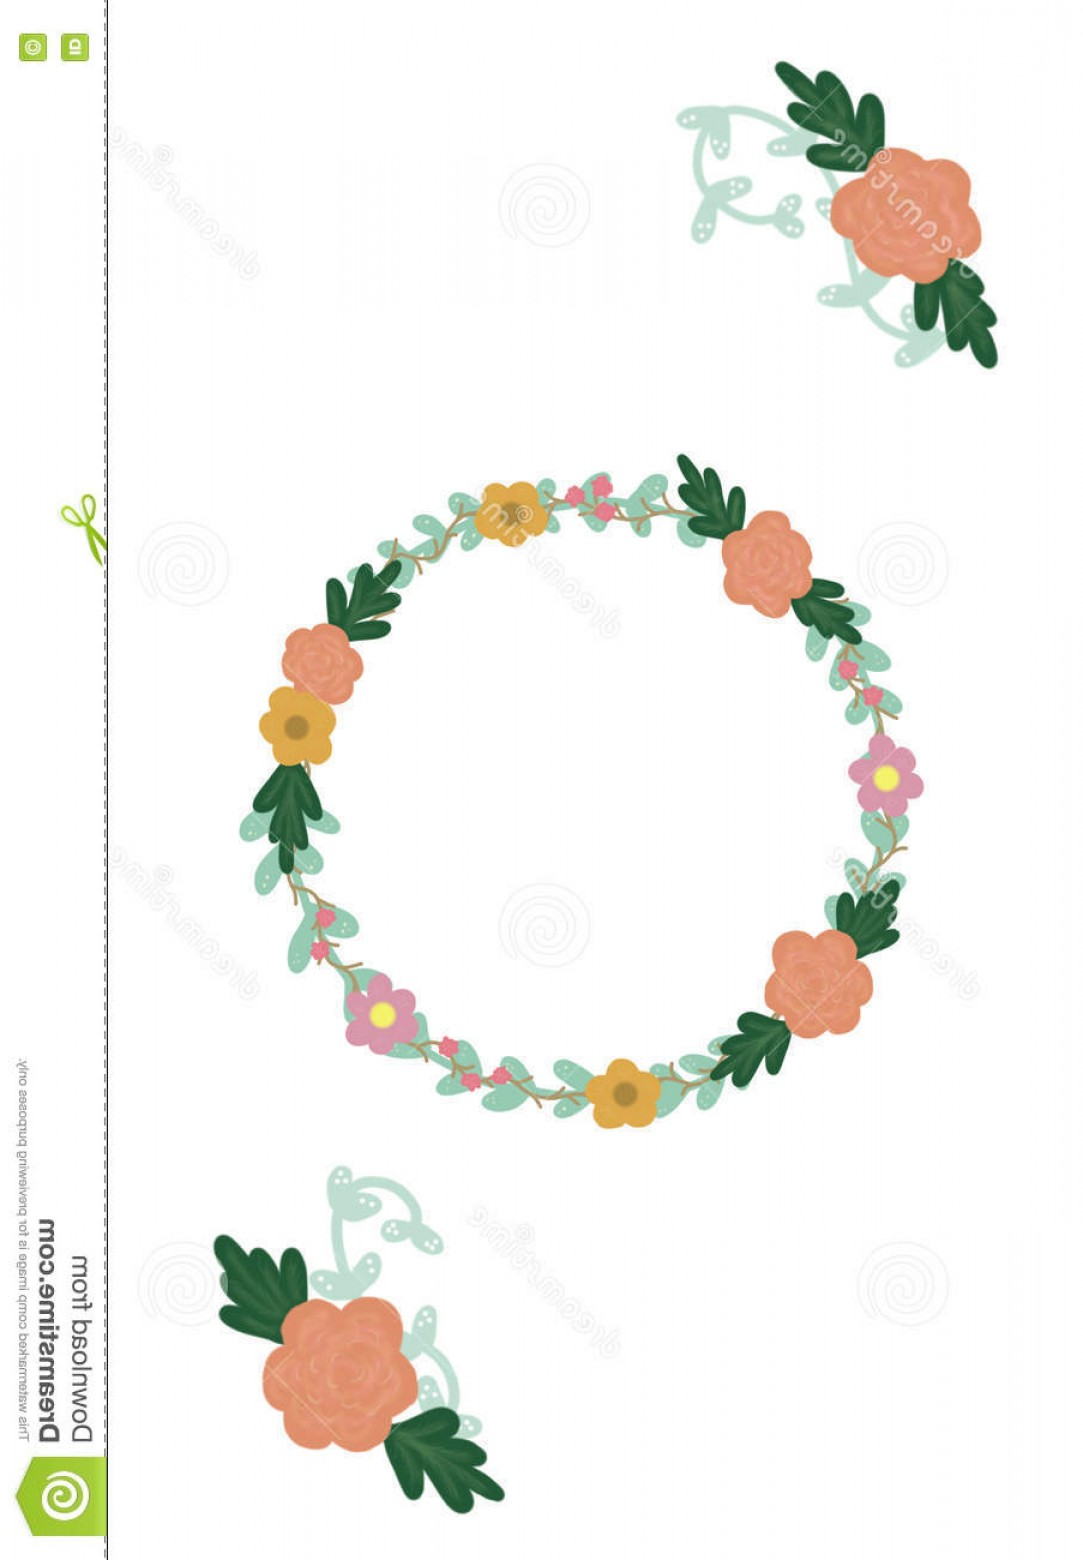 Vine Vector Graphics: Stock Illustration Hand Drawn Floral Wreath Vector Flower Vine Designs Rustic Style Graphics Image